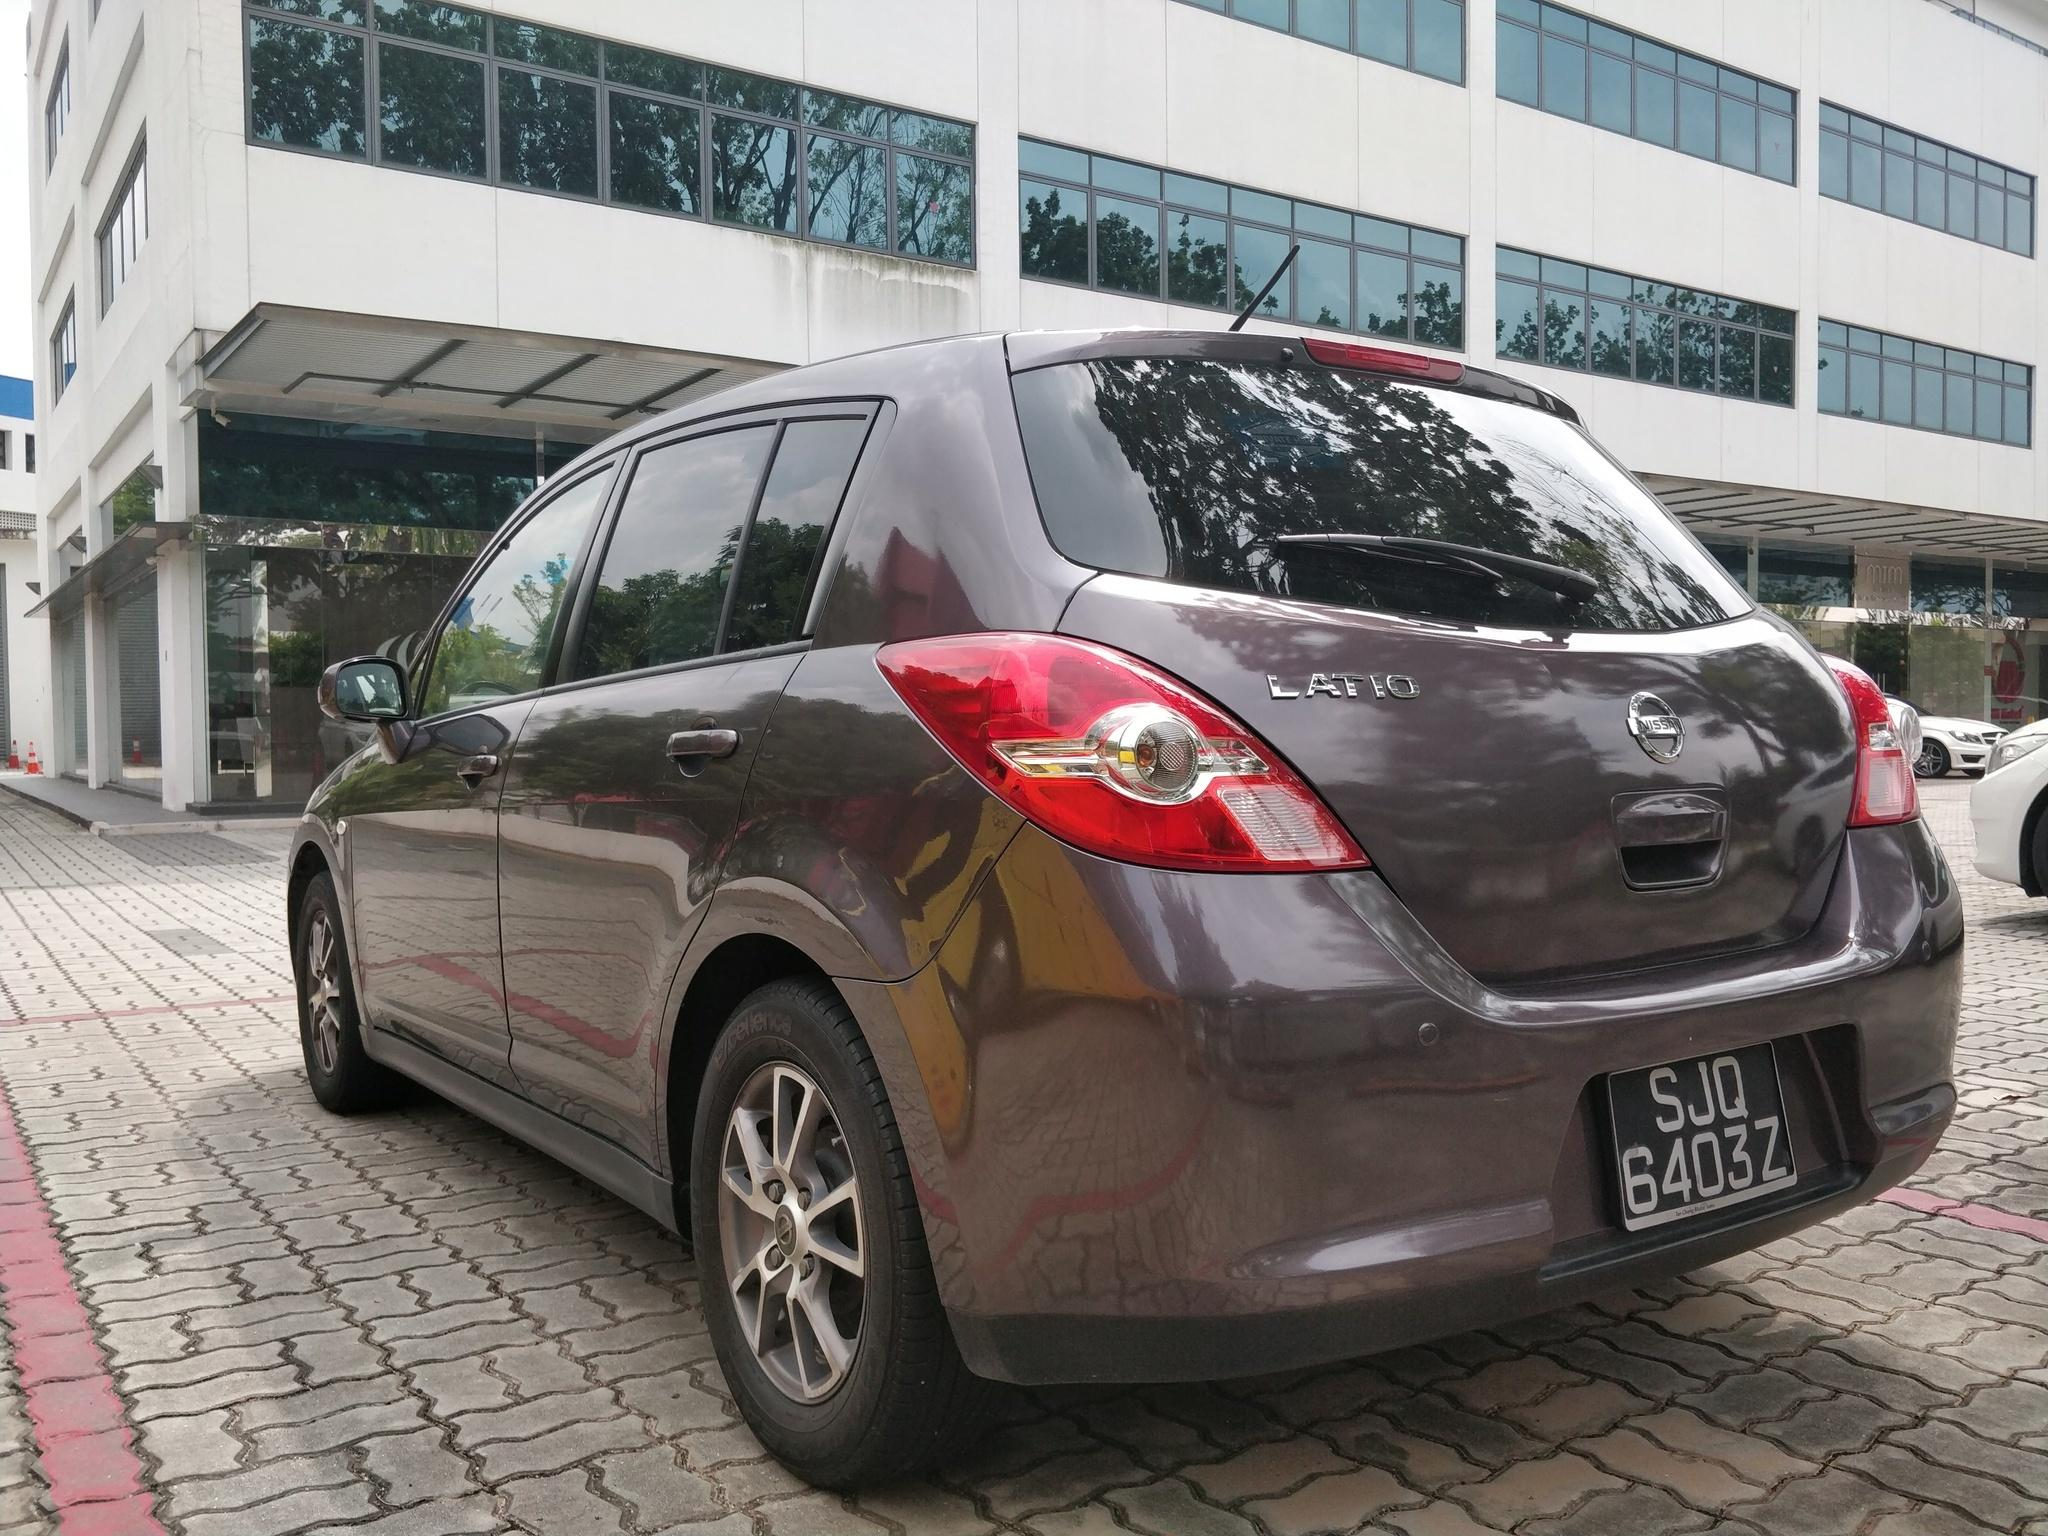 Nissan Latio 1.5A - Lowest rental rates, good condition!